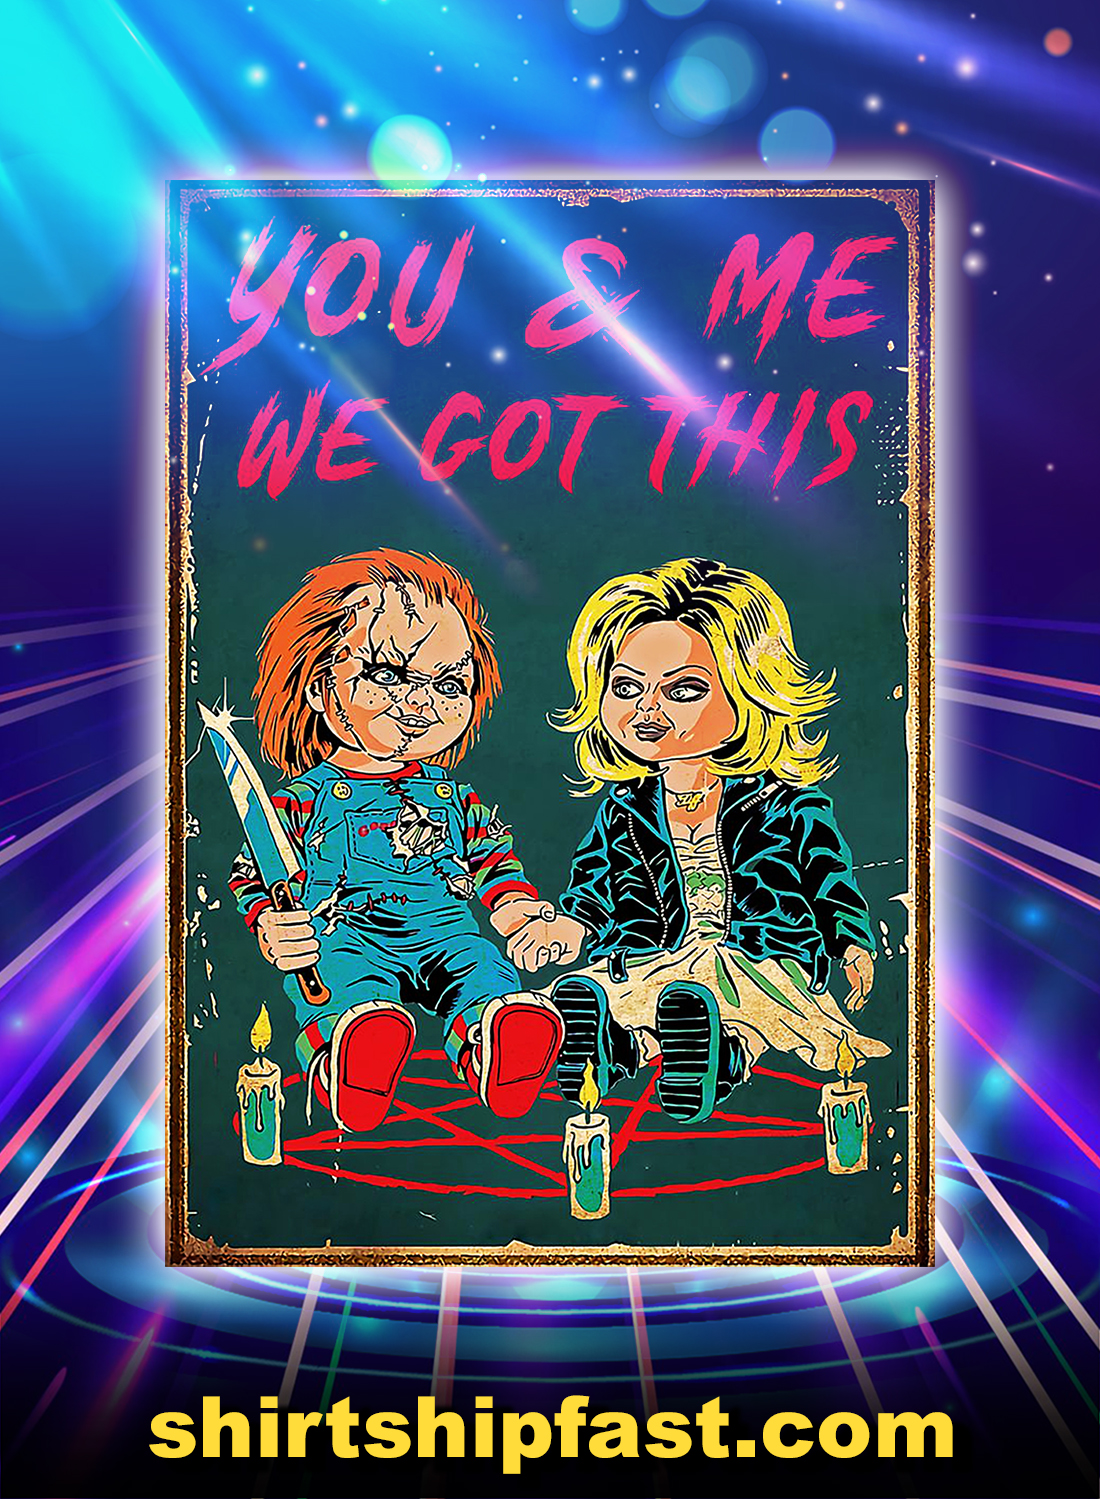 Bride of chucky you and me we got this poster - A4